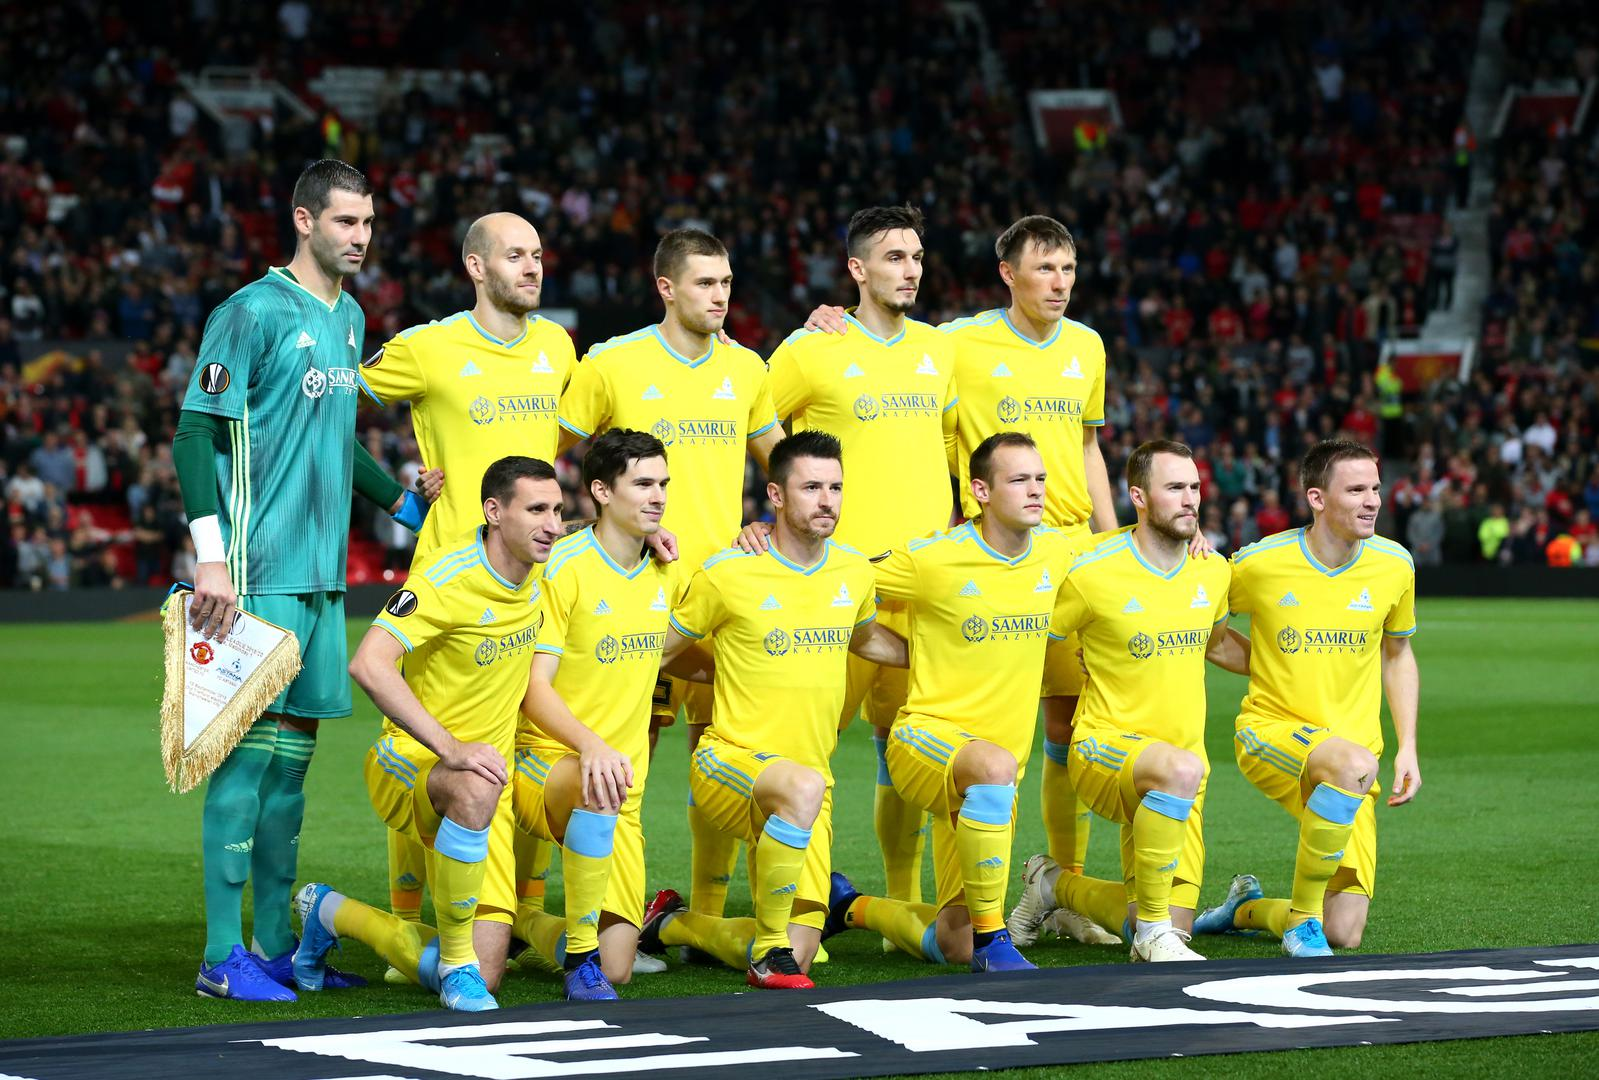 Astana line up for a team photograph at Old Trafford